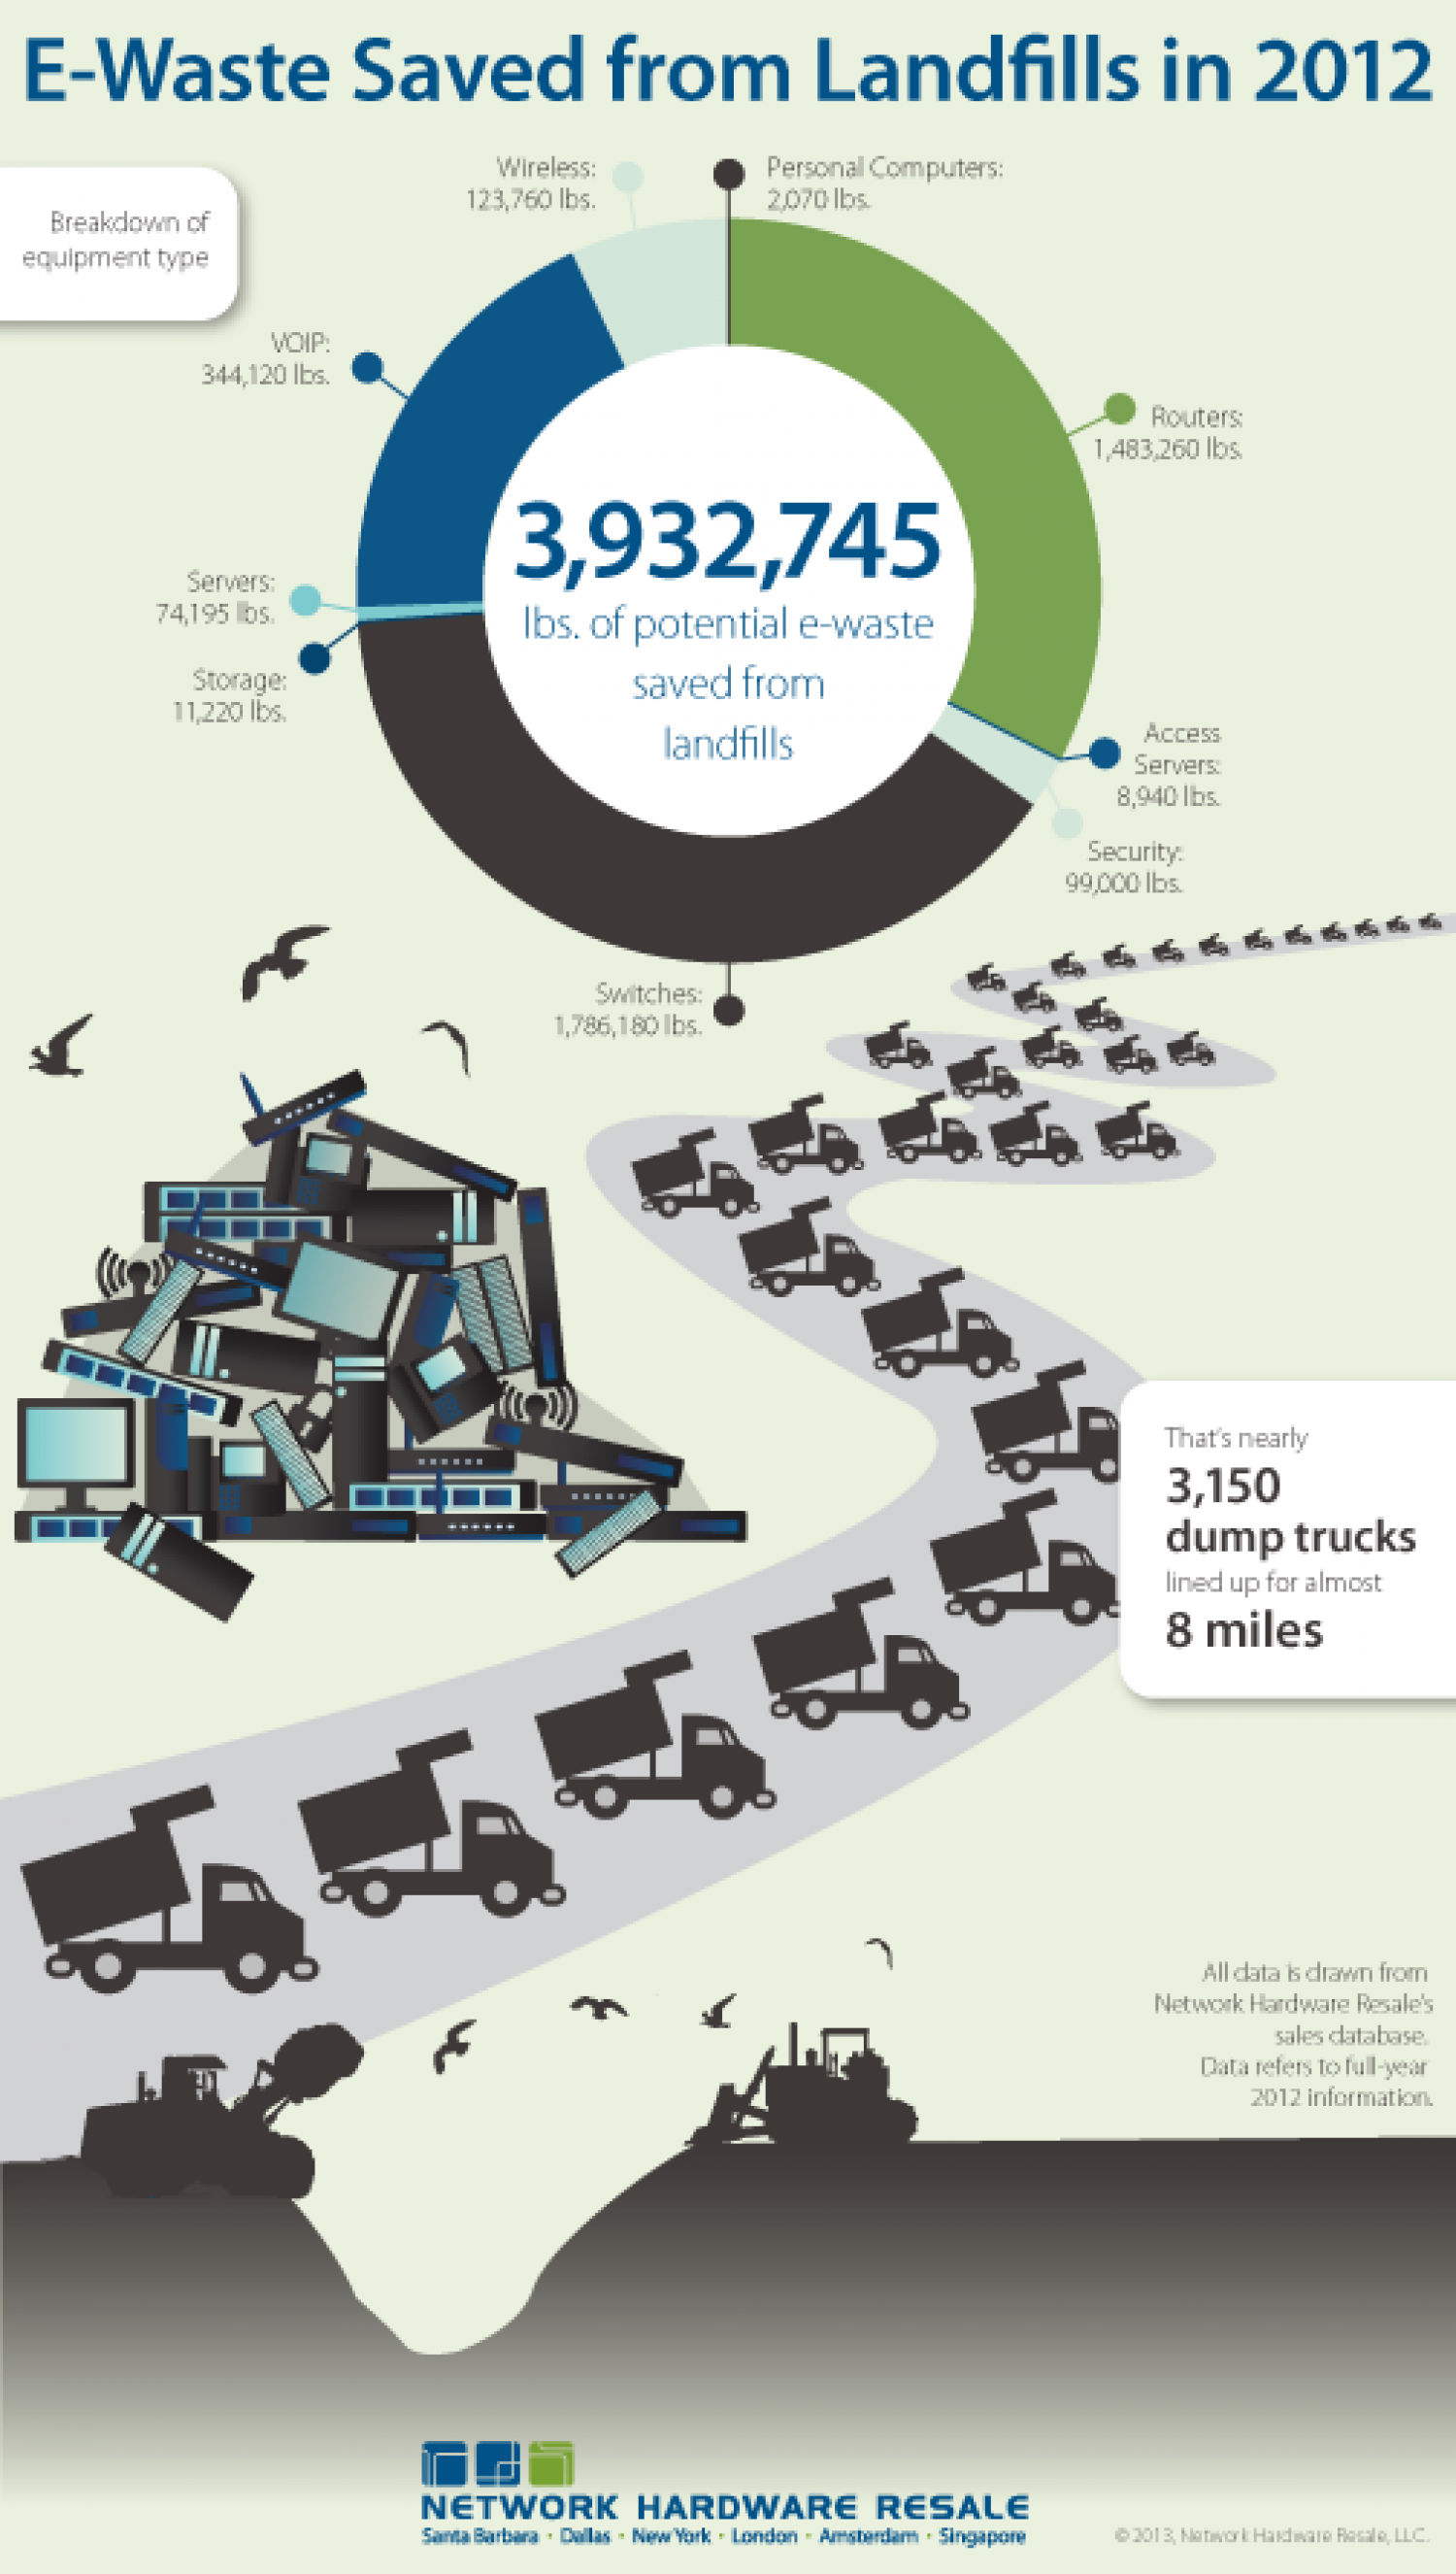 E-Waste Saved from Landfills in 2012 Infographic